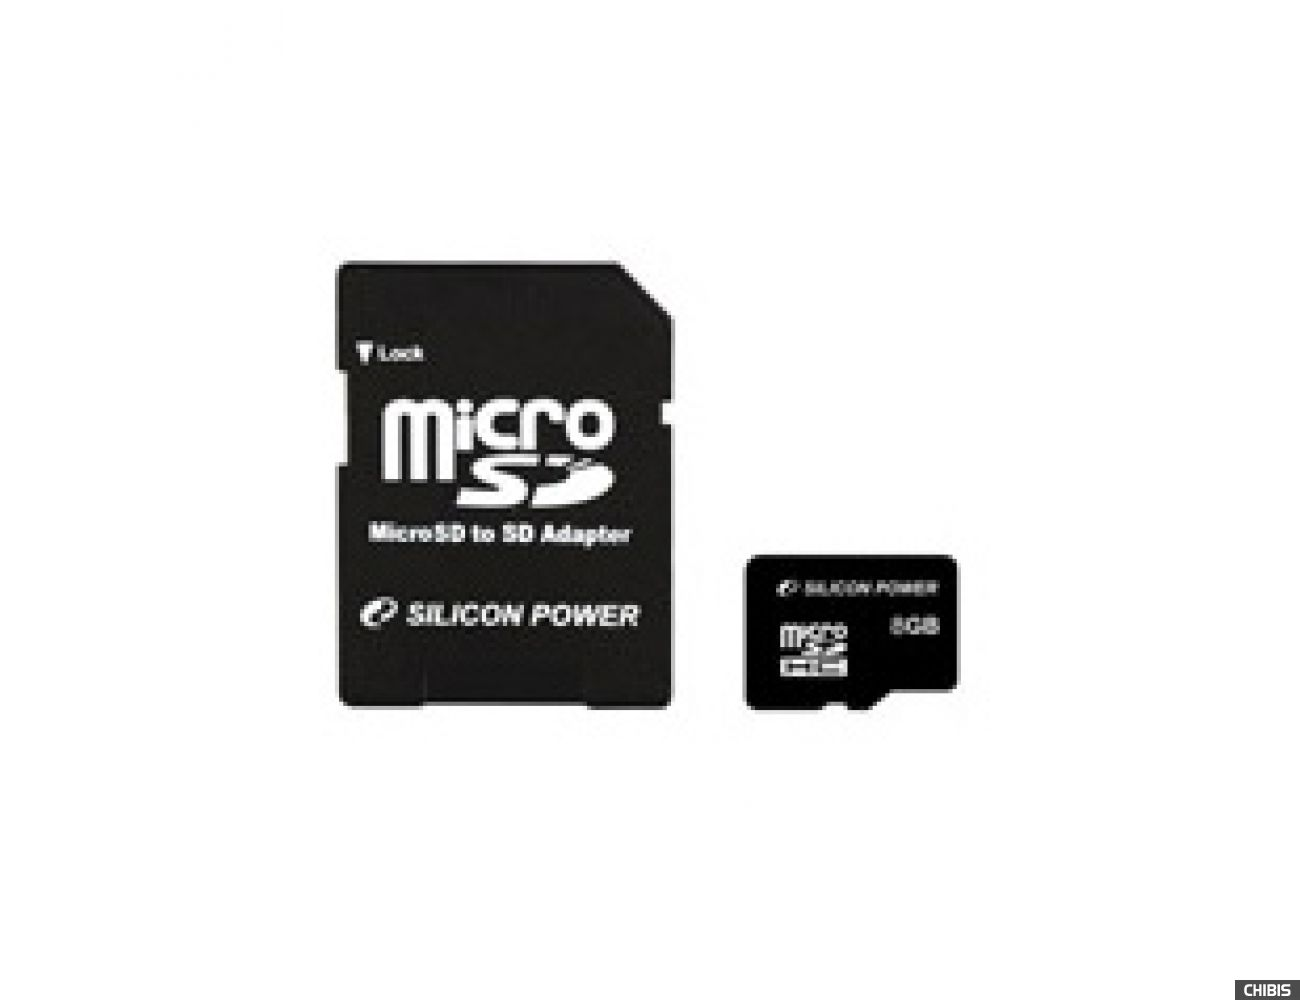 Карта памяти SILICON POWER MicroSDHC 8 GB card Class 4 + adapter